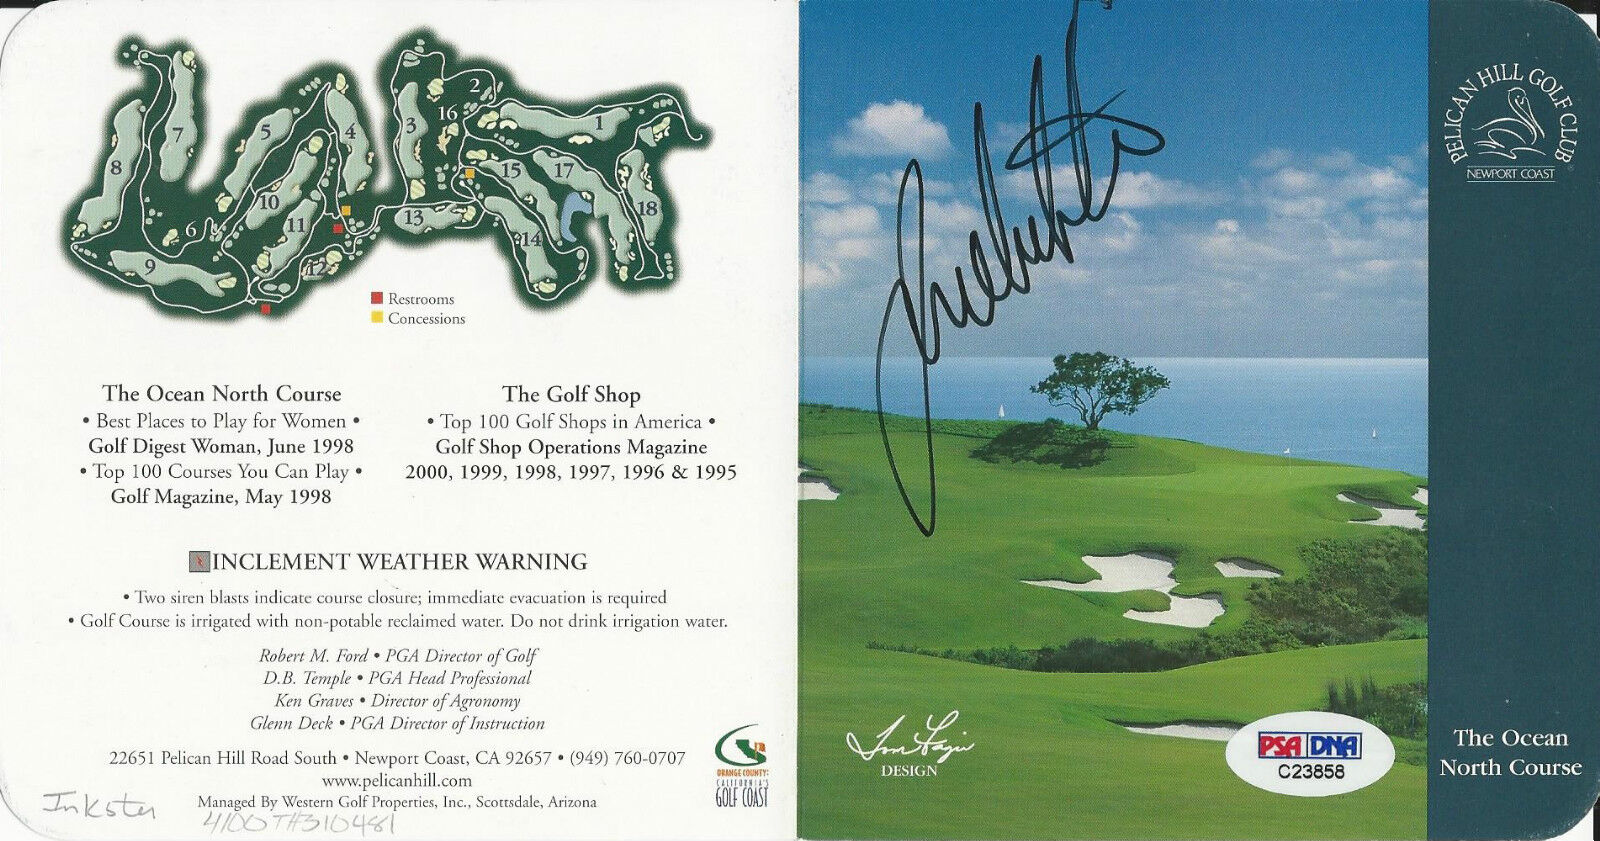 Joe Inkster Signed Pelican Hill Golf Club Score Card PSA/DNA # C23858